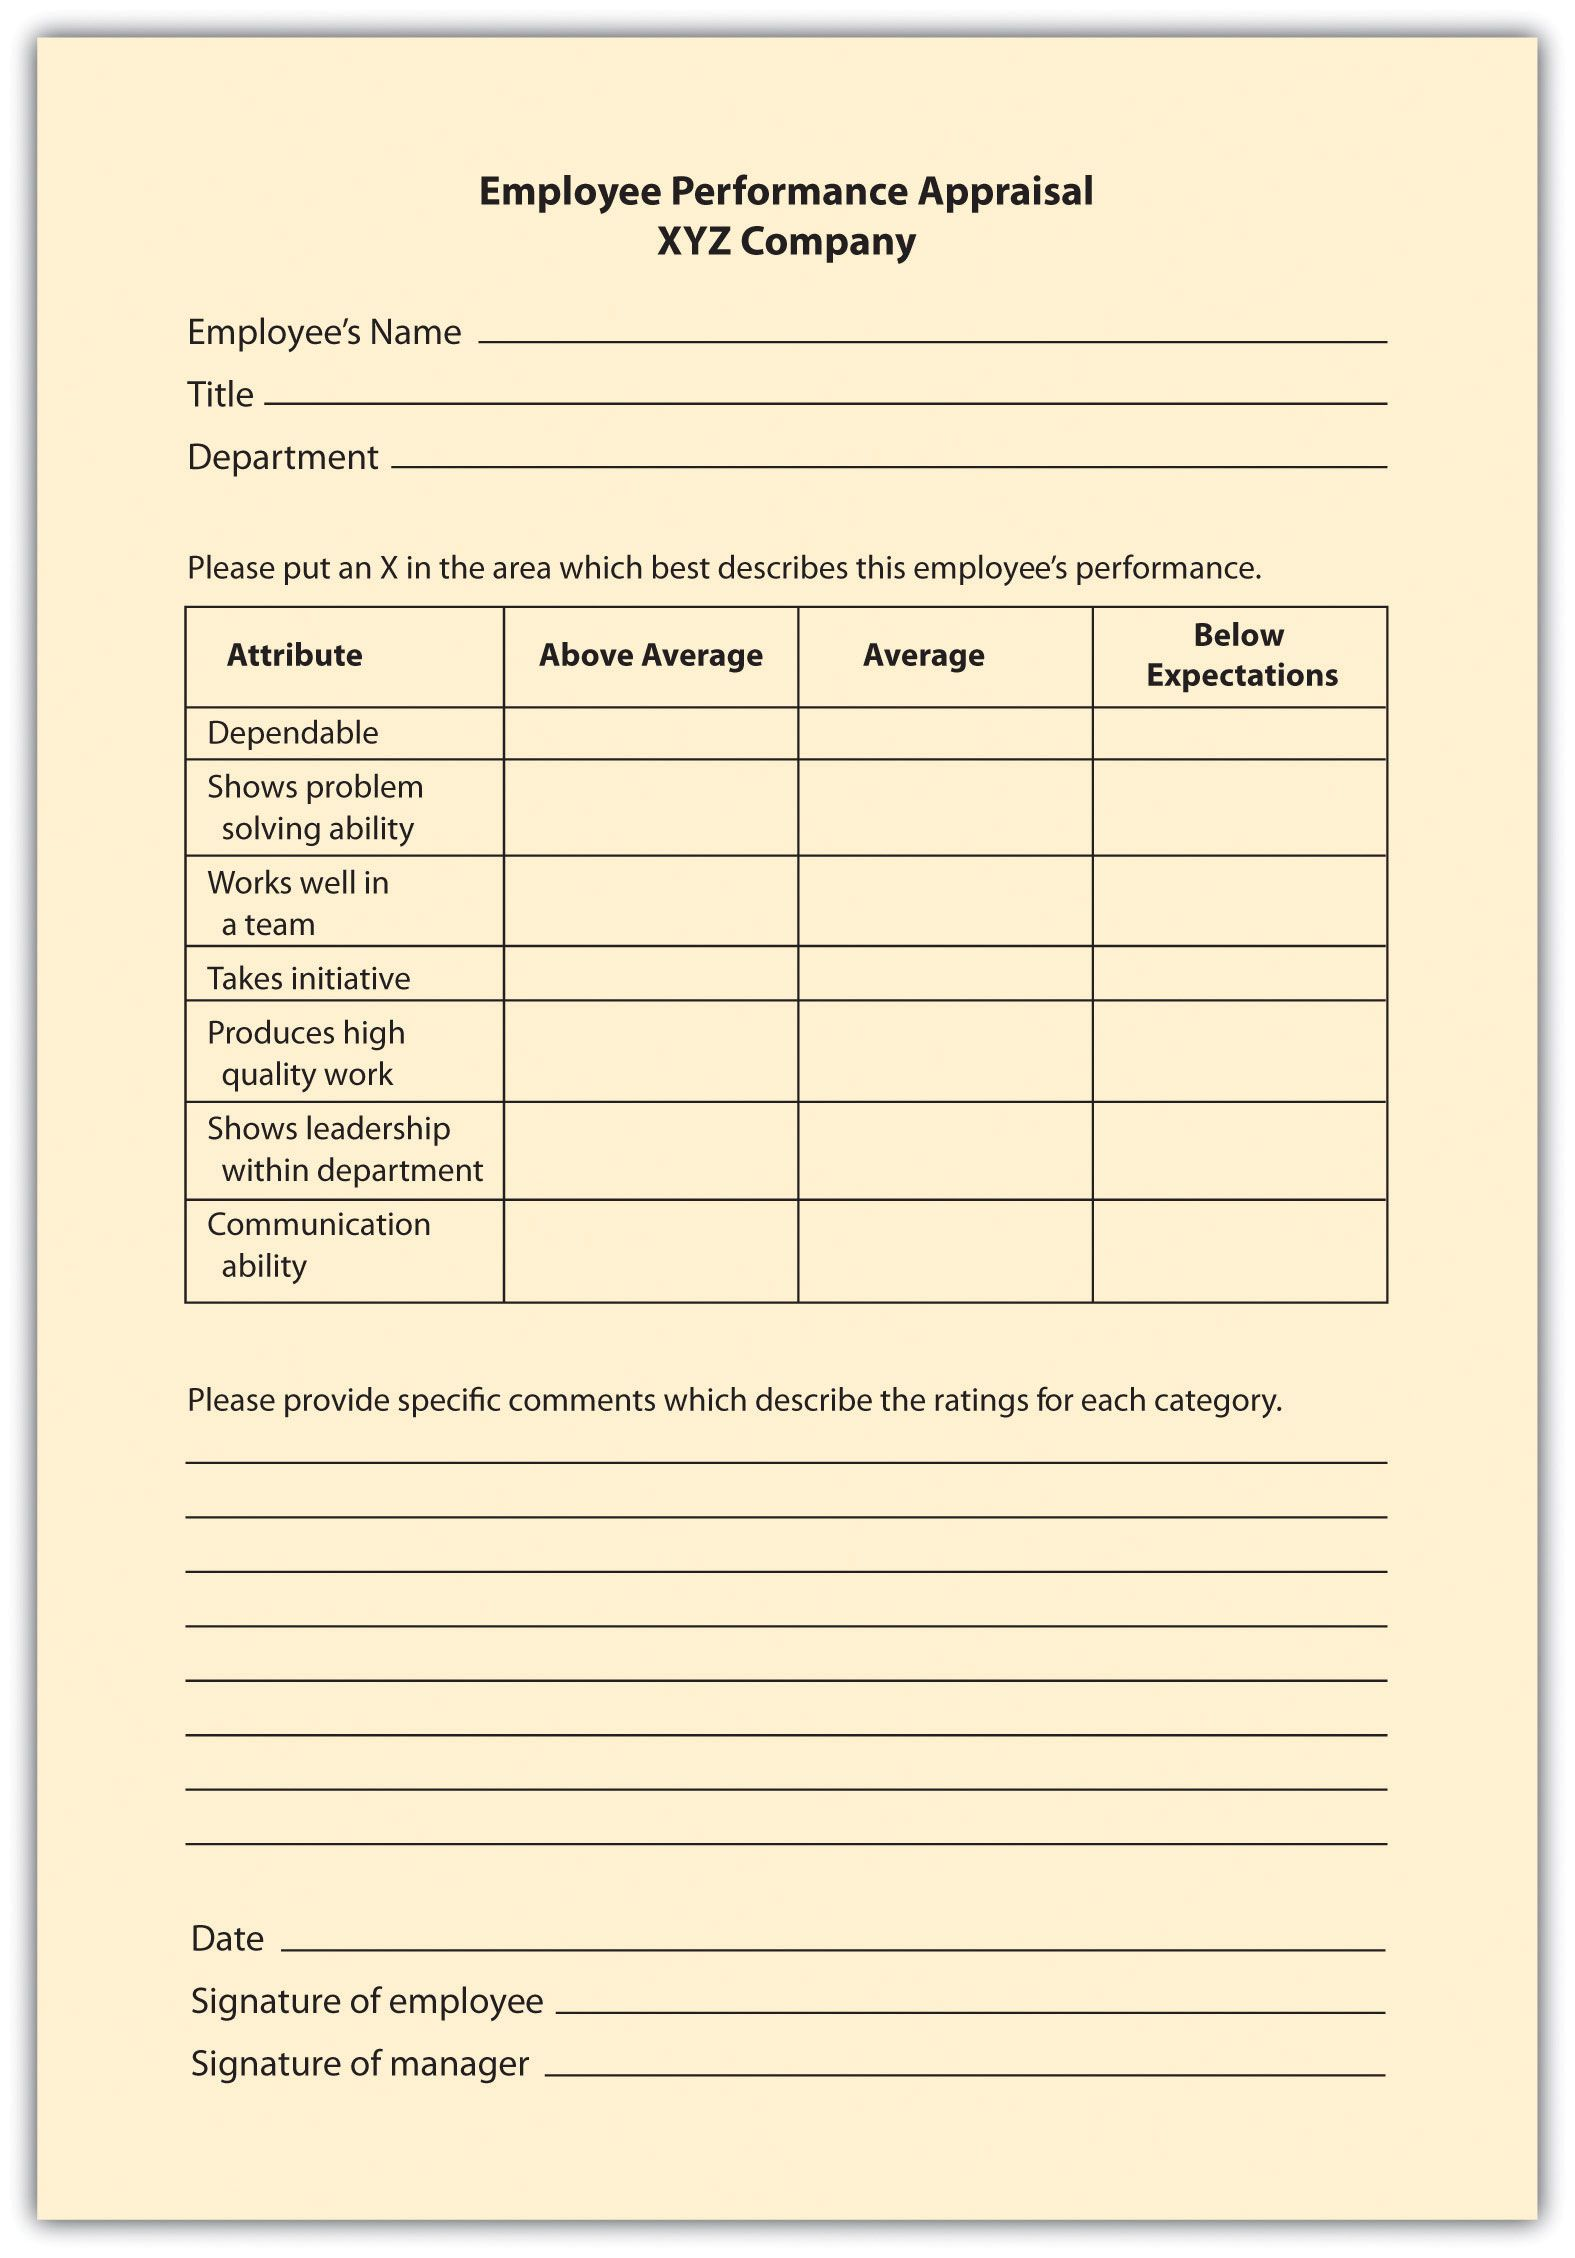 Examples Of Performance Appraisal Graphic Rating Scale Inquire